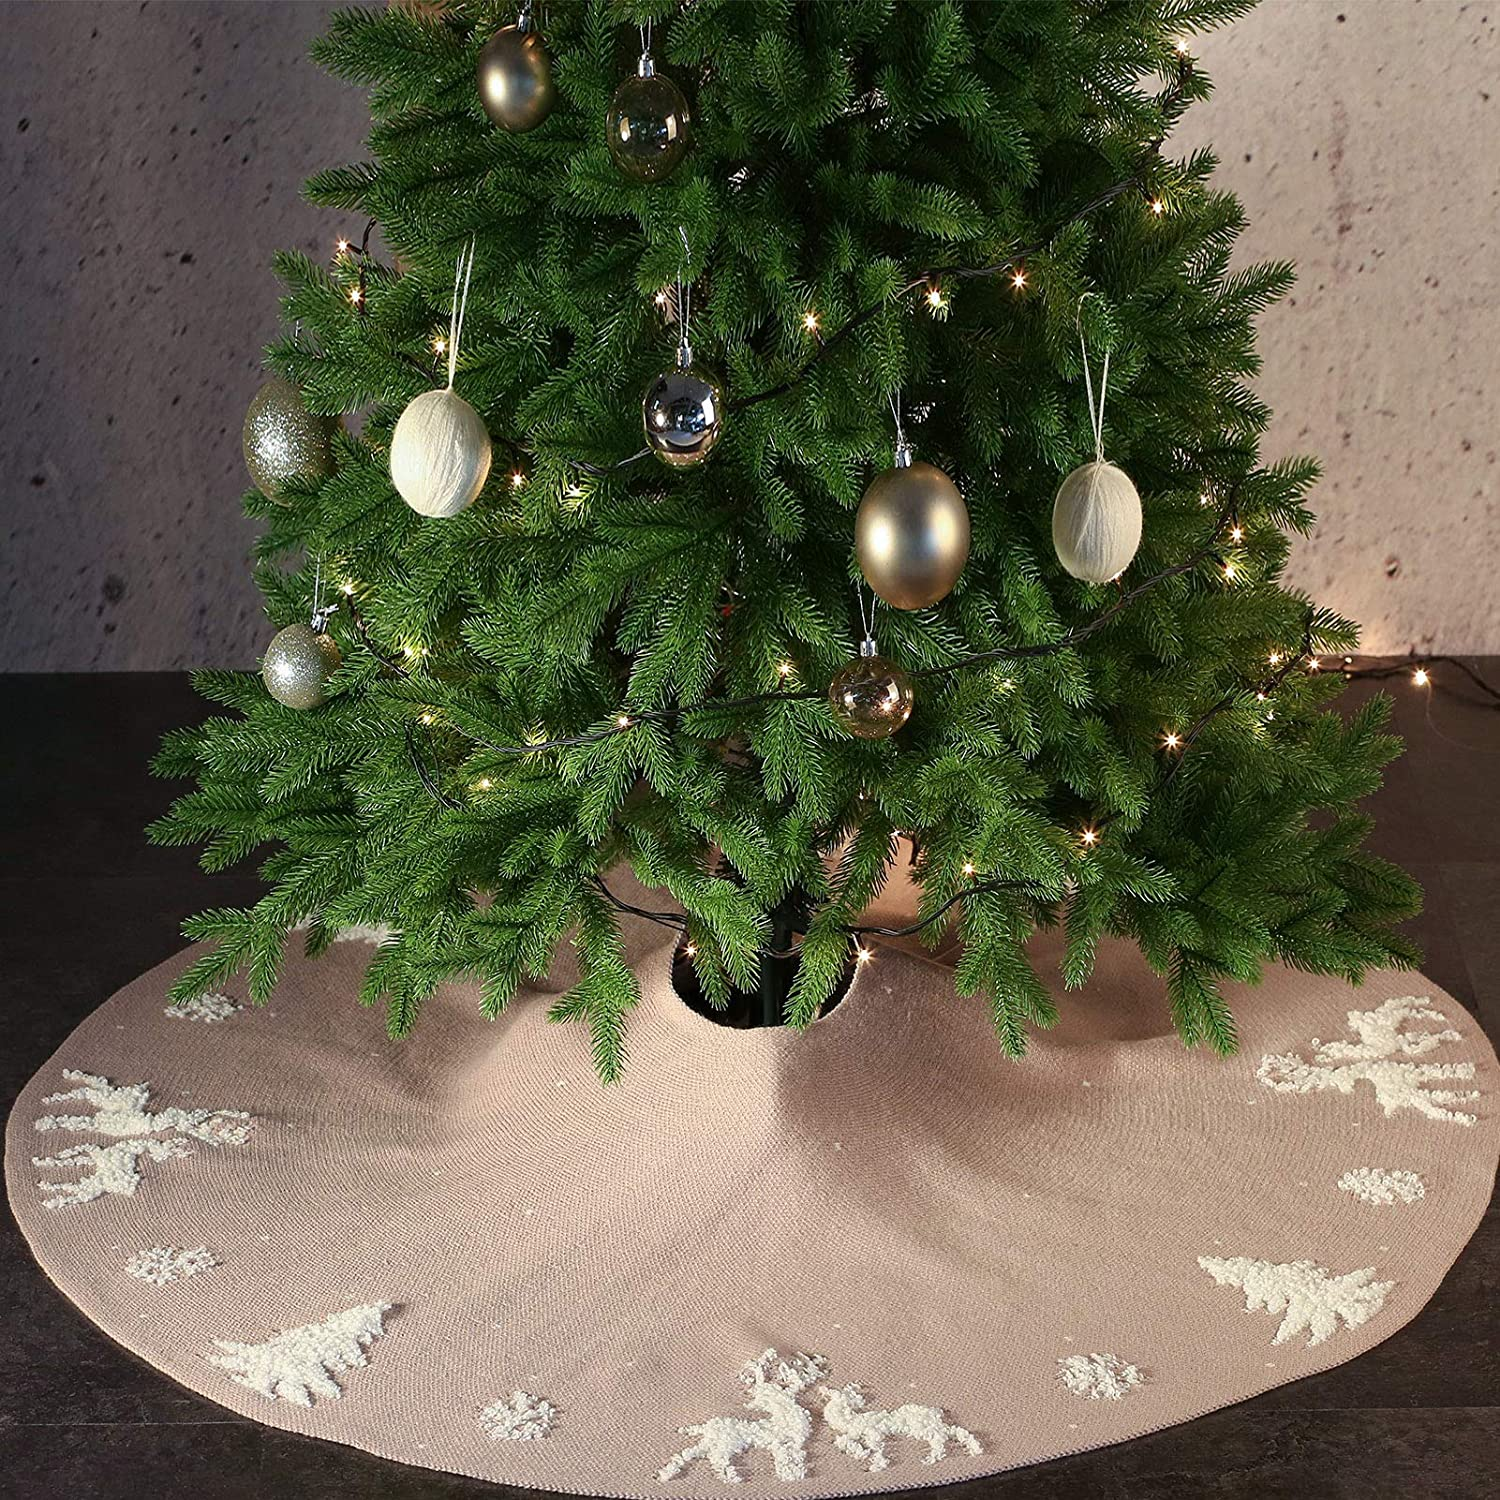 AOFEITE Christmas Tree Skirt 48 inches Large with 3D Knitted Reindeer Snowflake, Woven Acrylic Wool Base Mat 6 to 8ft Tall Trees Suitable, Rustic Festive Xmas Holiday Décor Beige